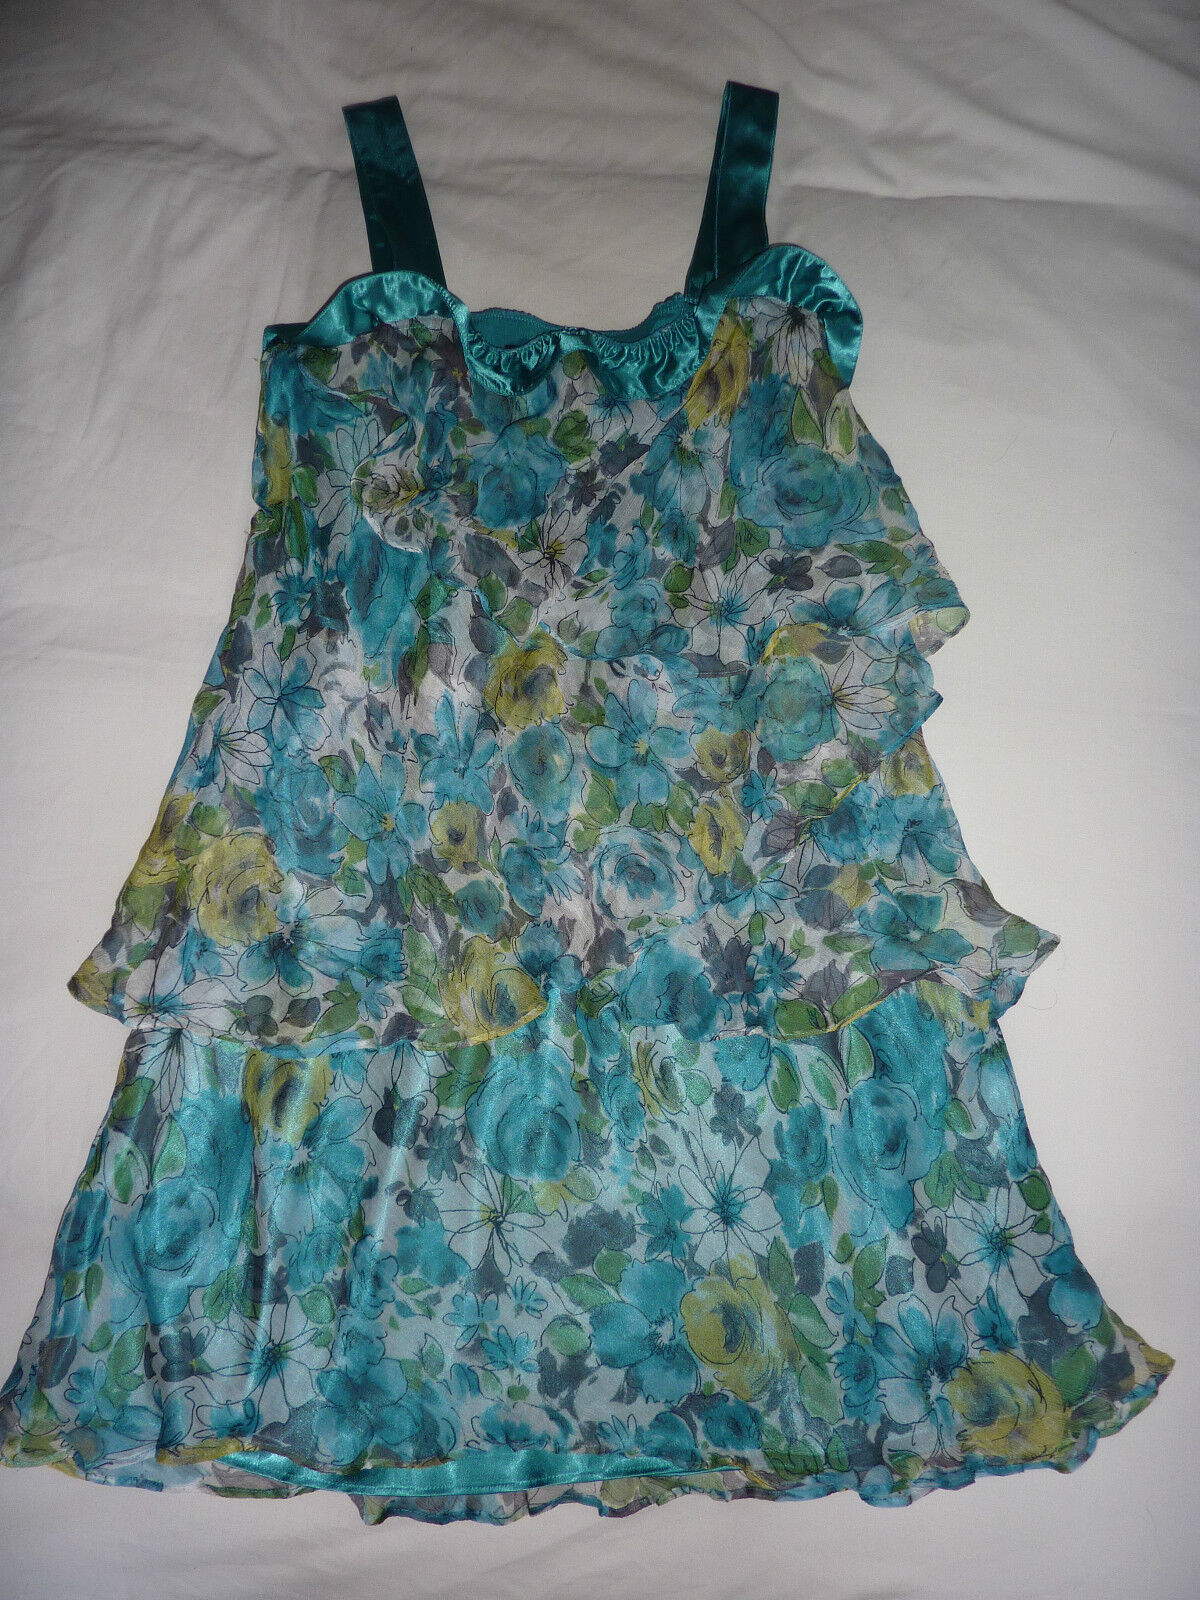 Hobbs turquoise layered, strappy, sleeveless, flowery silk dress. Size 14